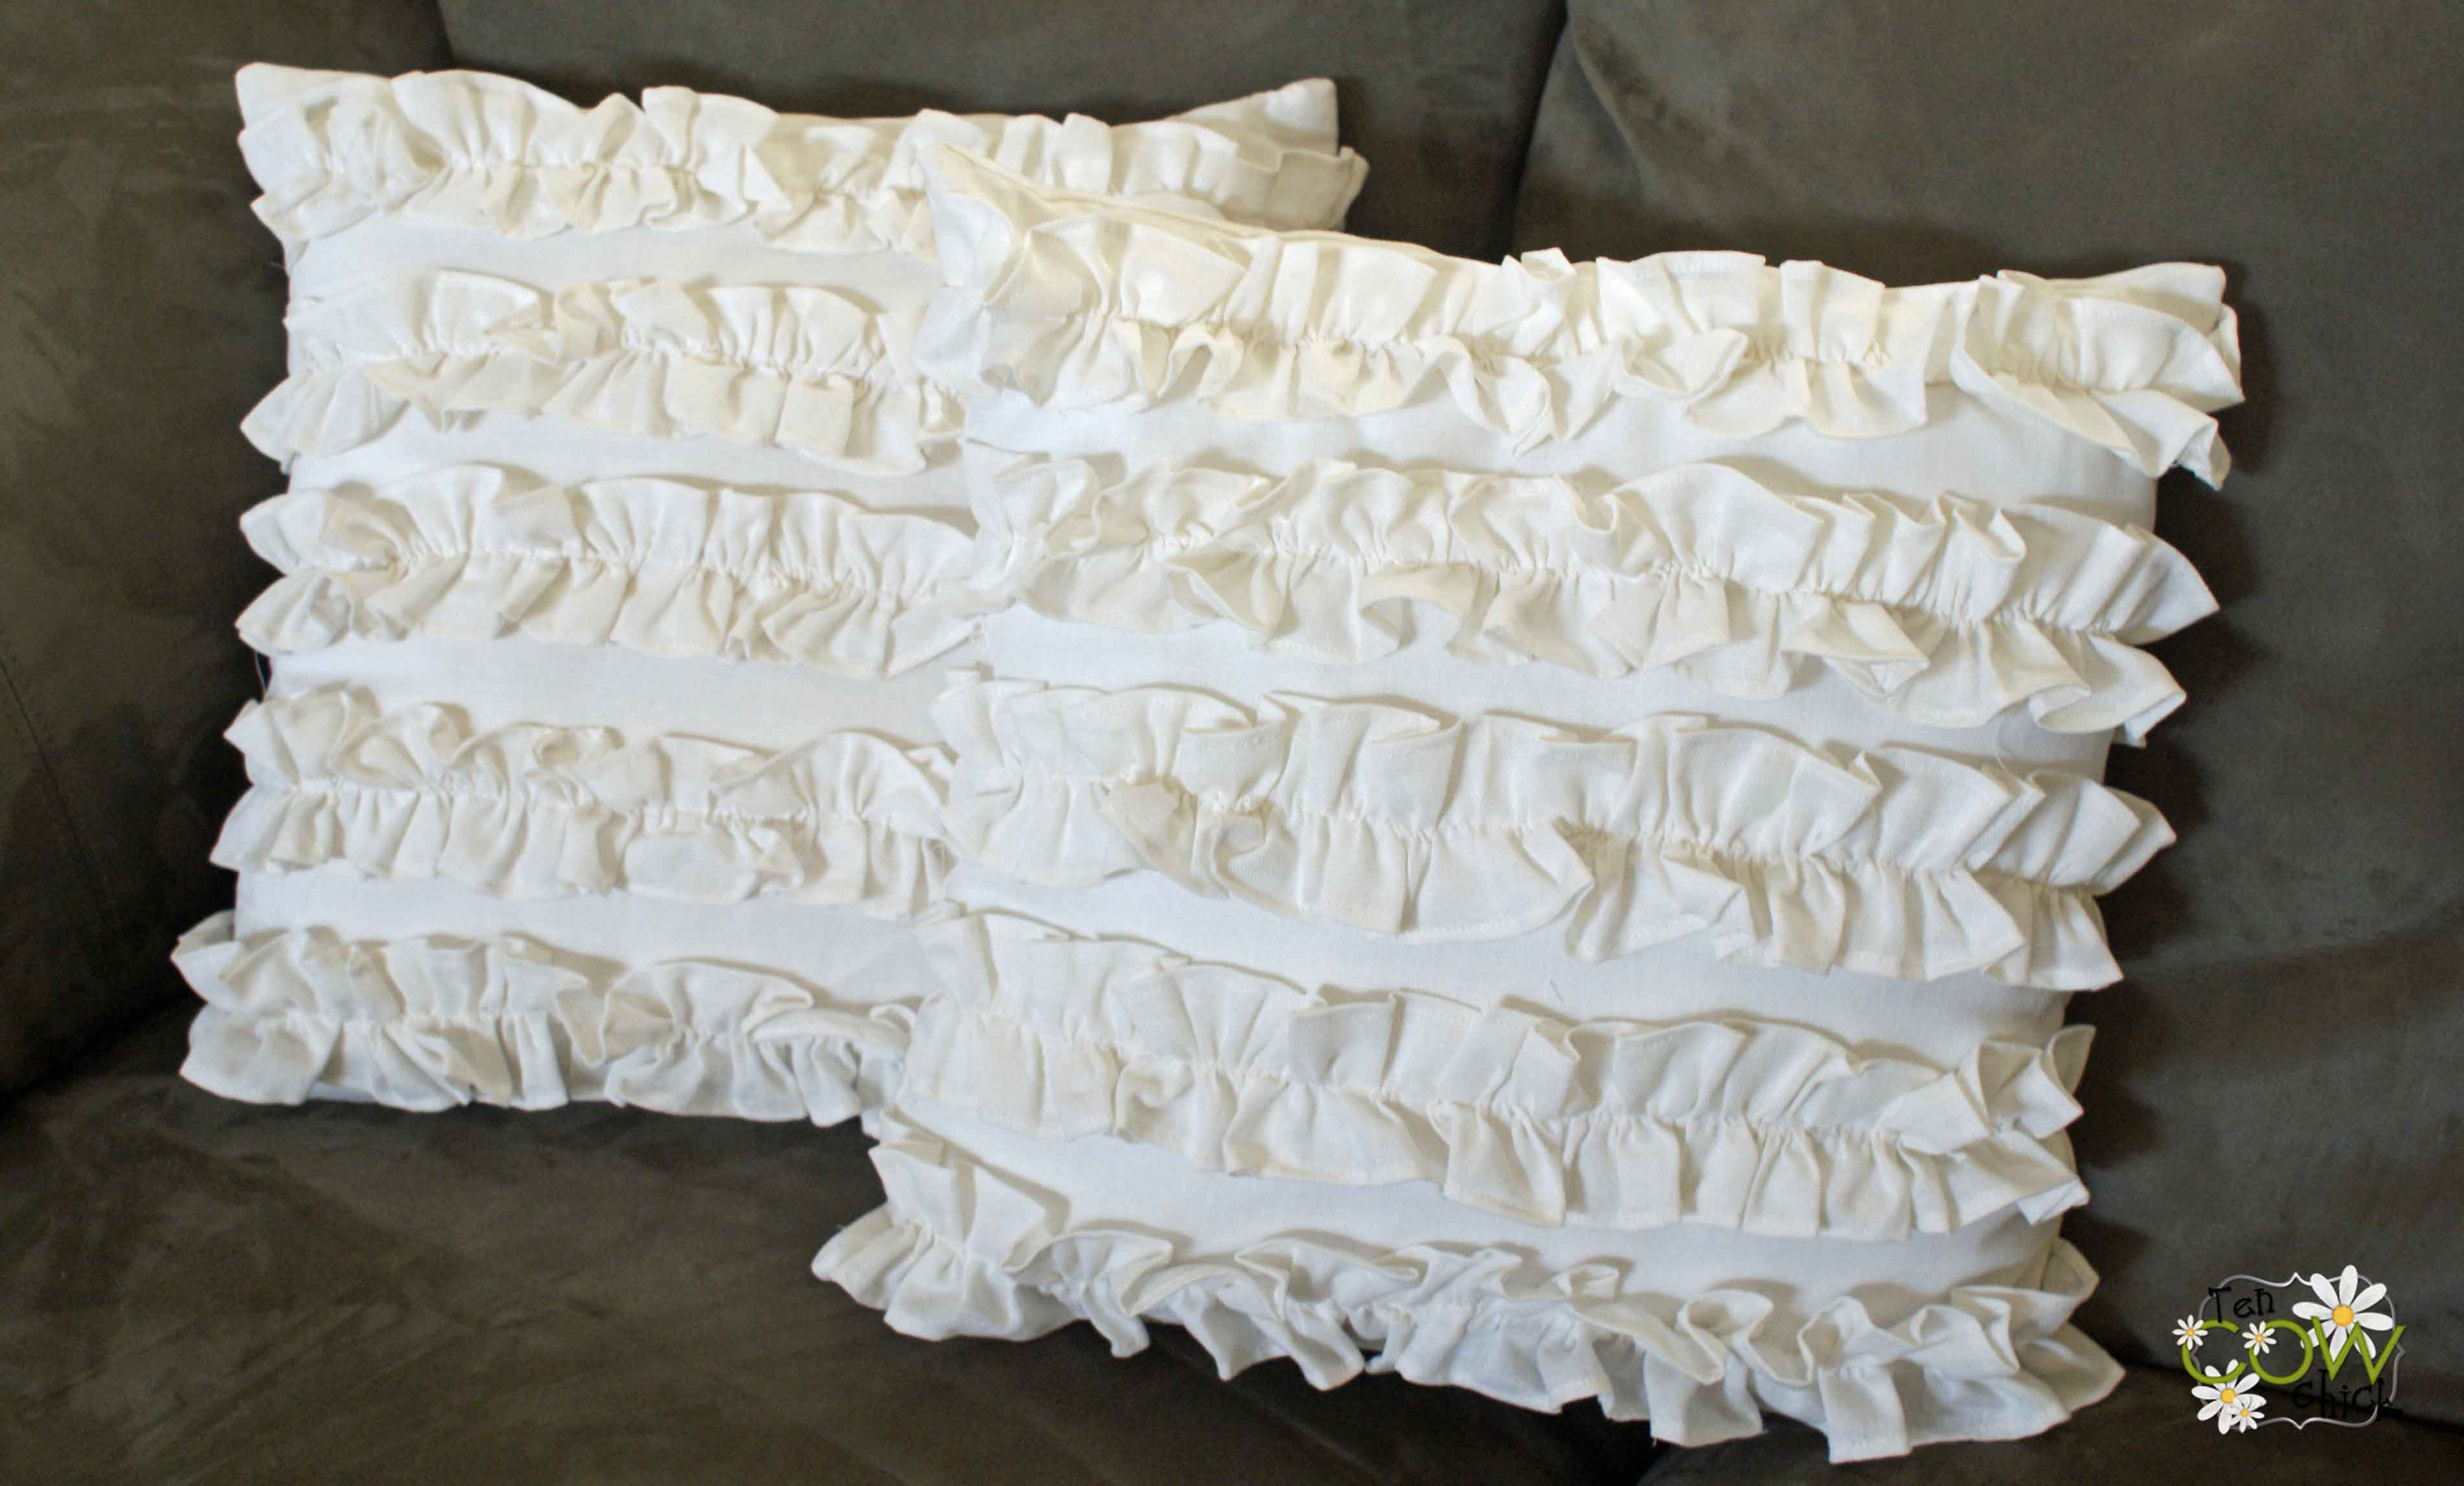 How To Make A Throw Pillow With Ruffle : Ruffle Pillows